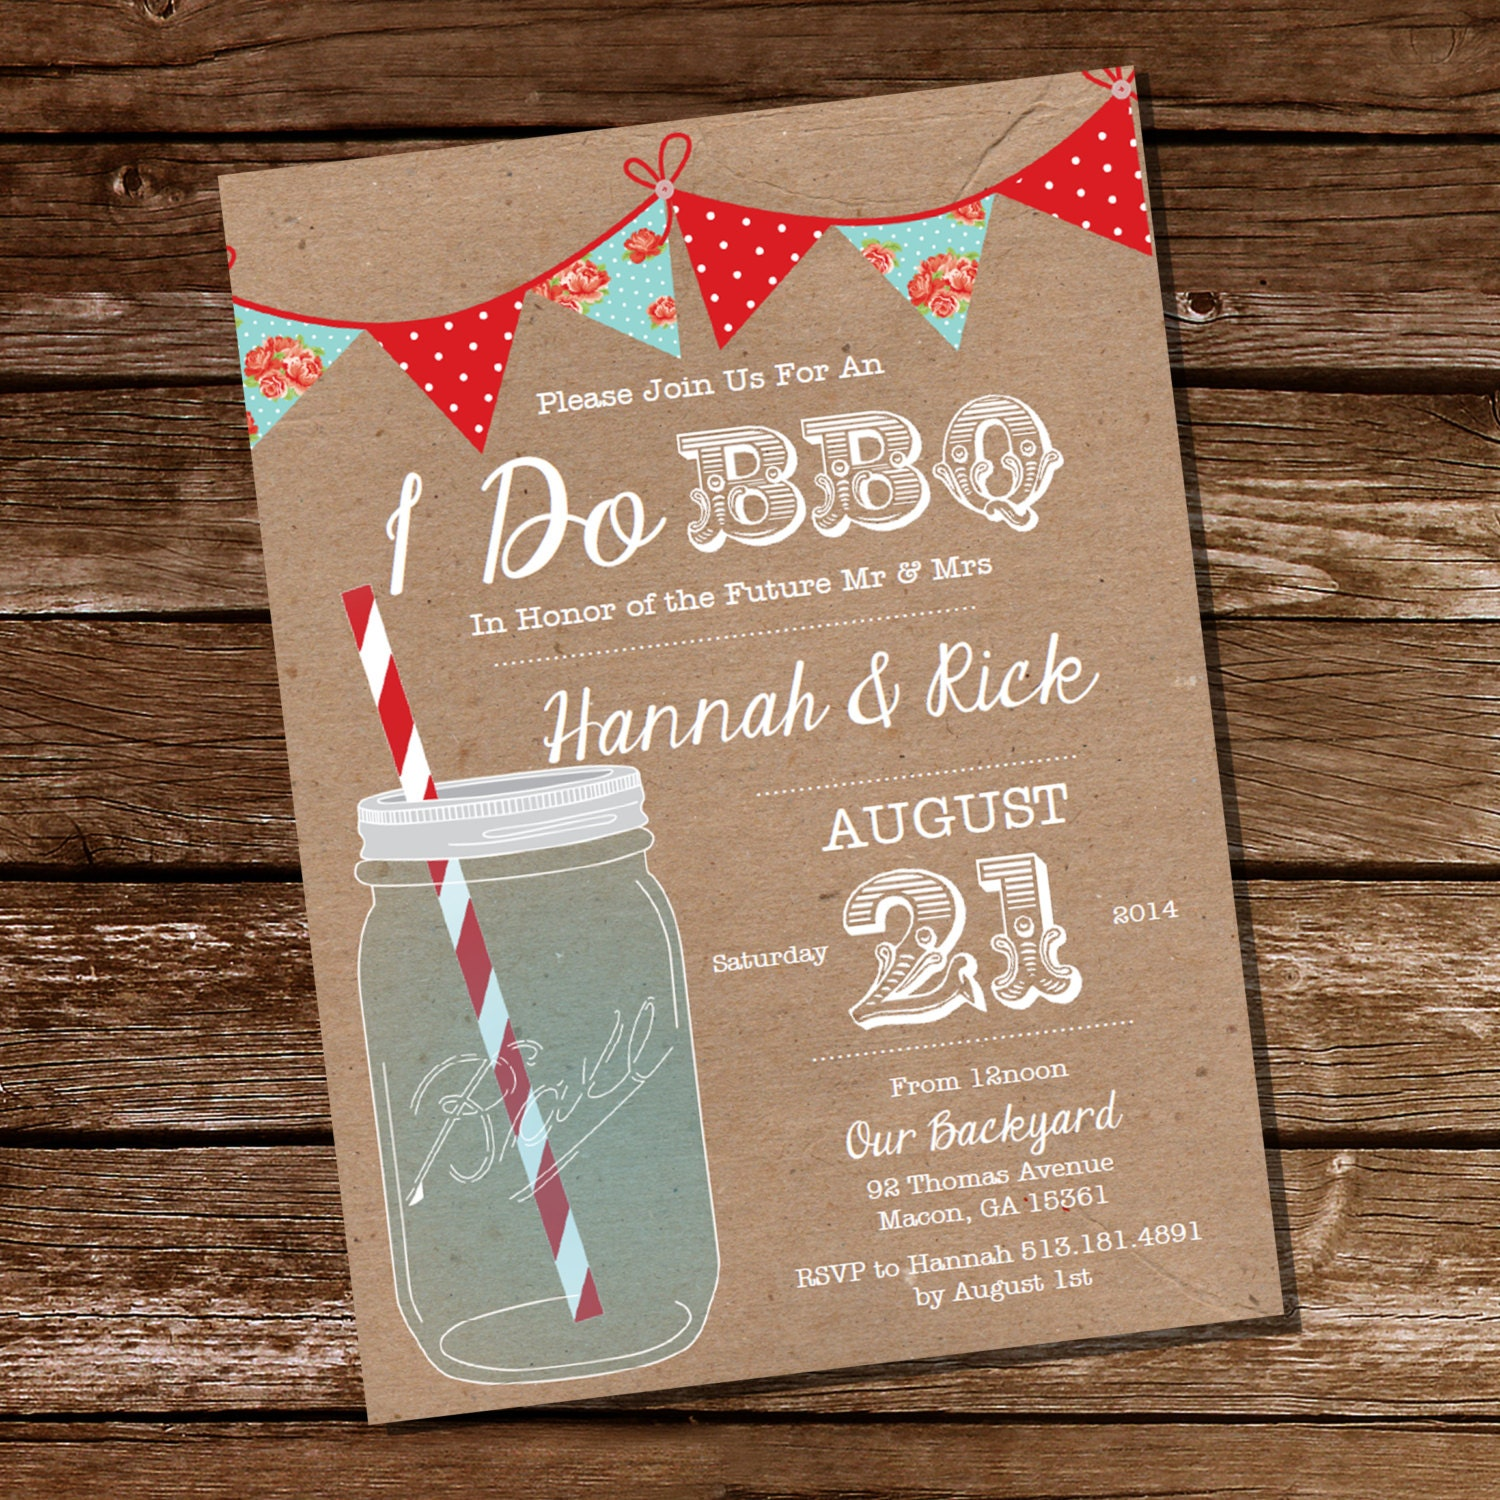 Chic I Do BBQ lnvitation Engagement Party Invitation